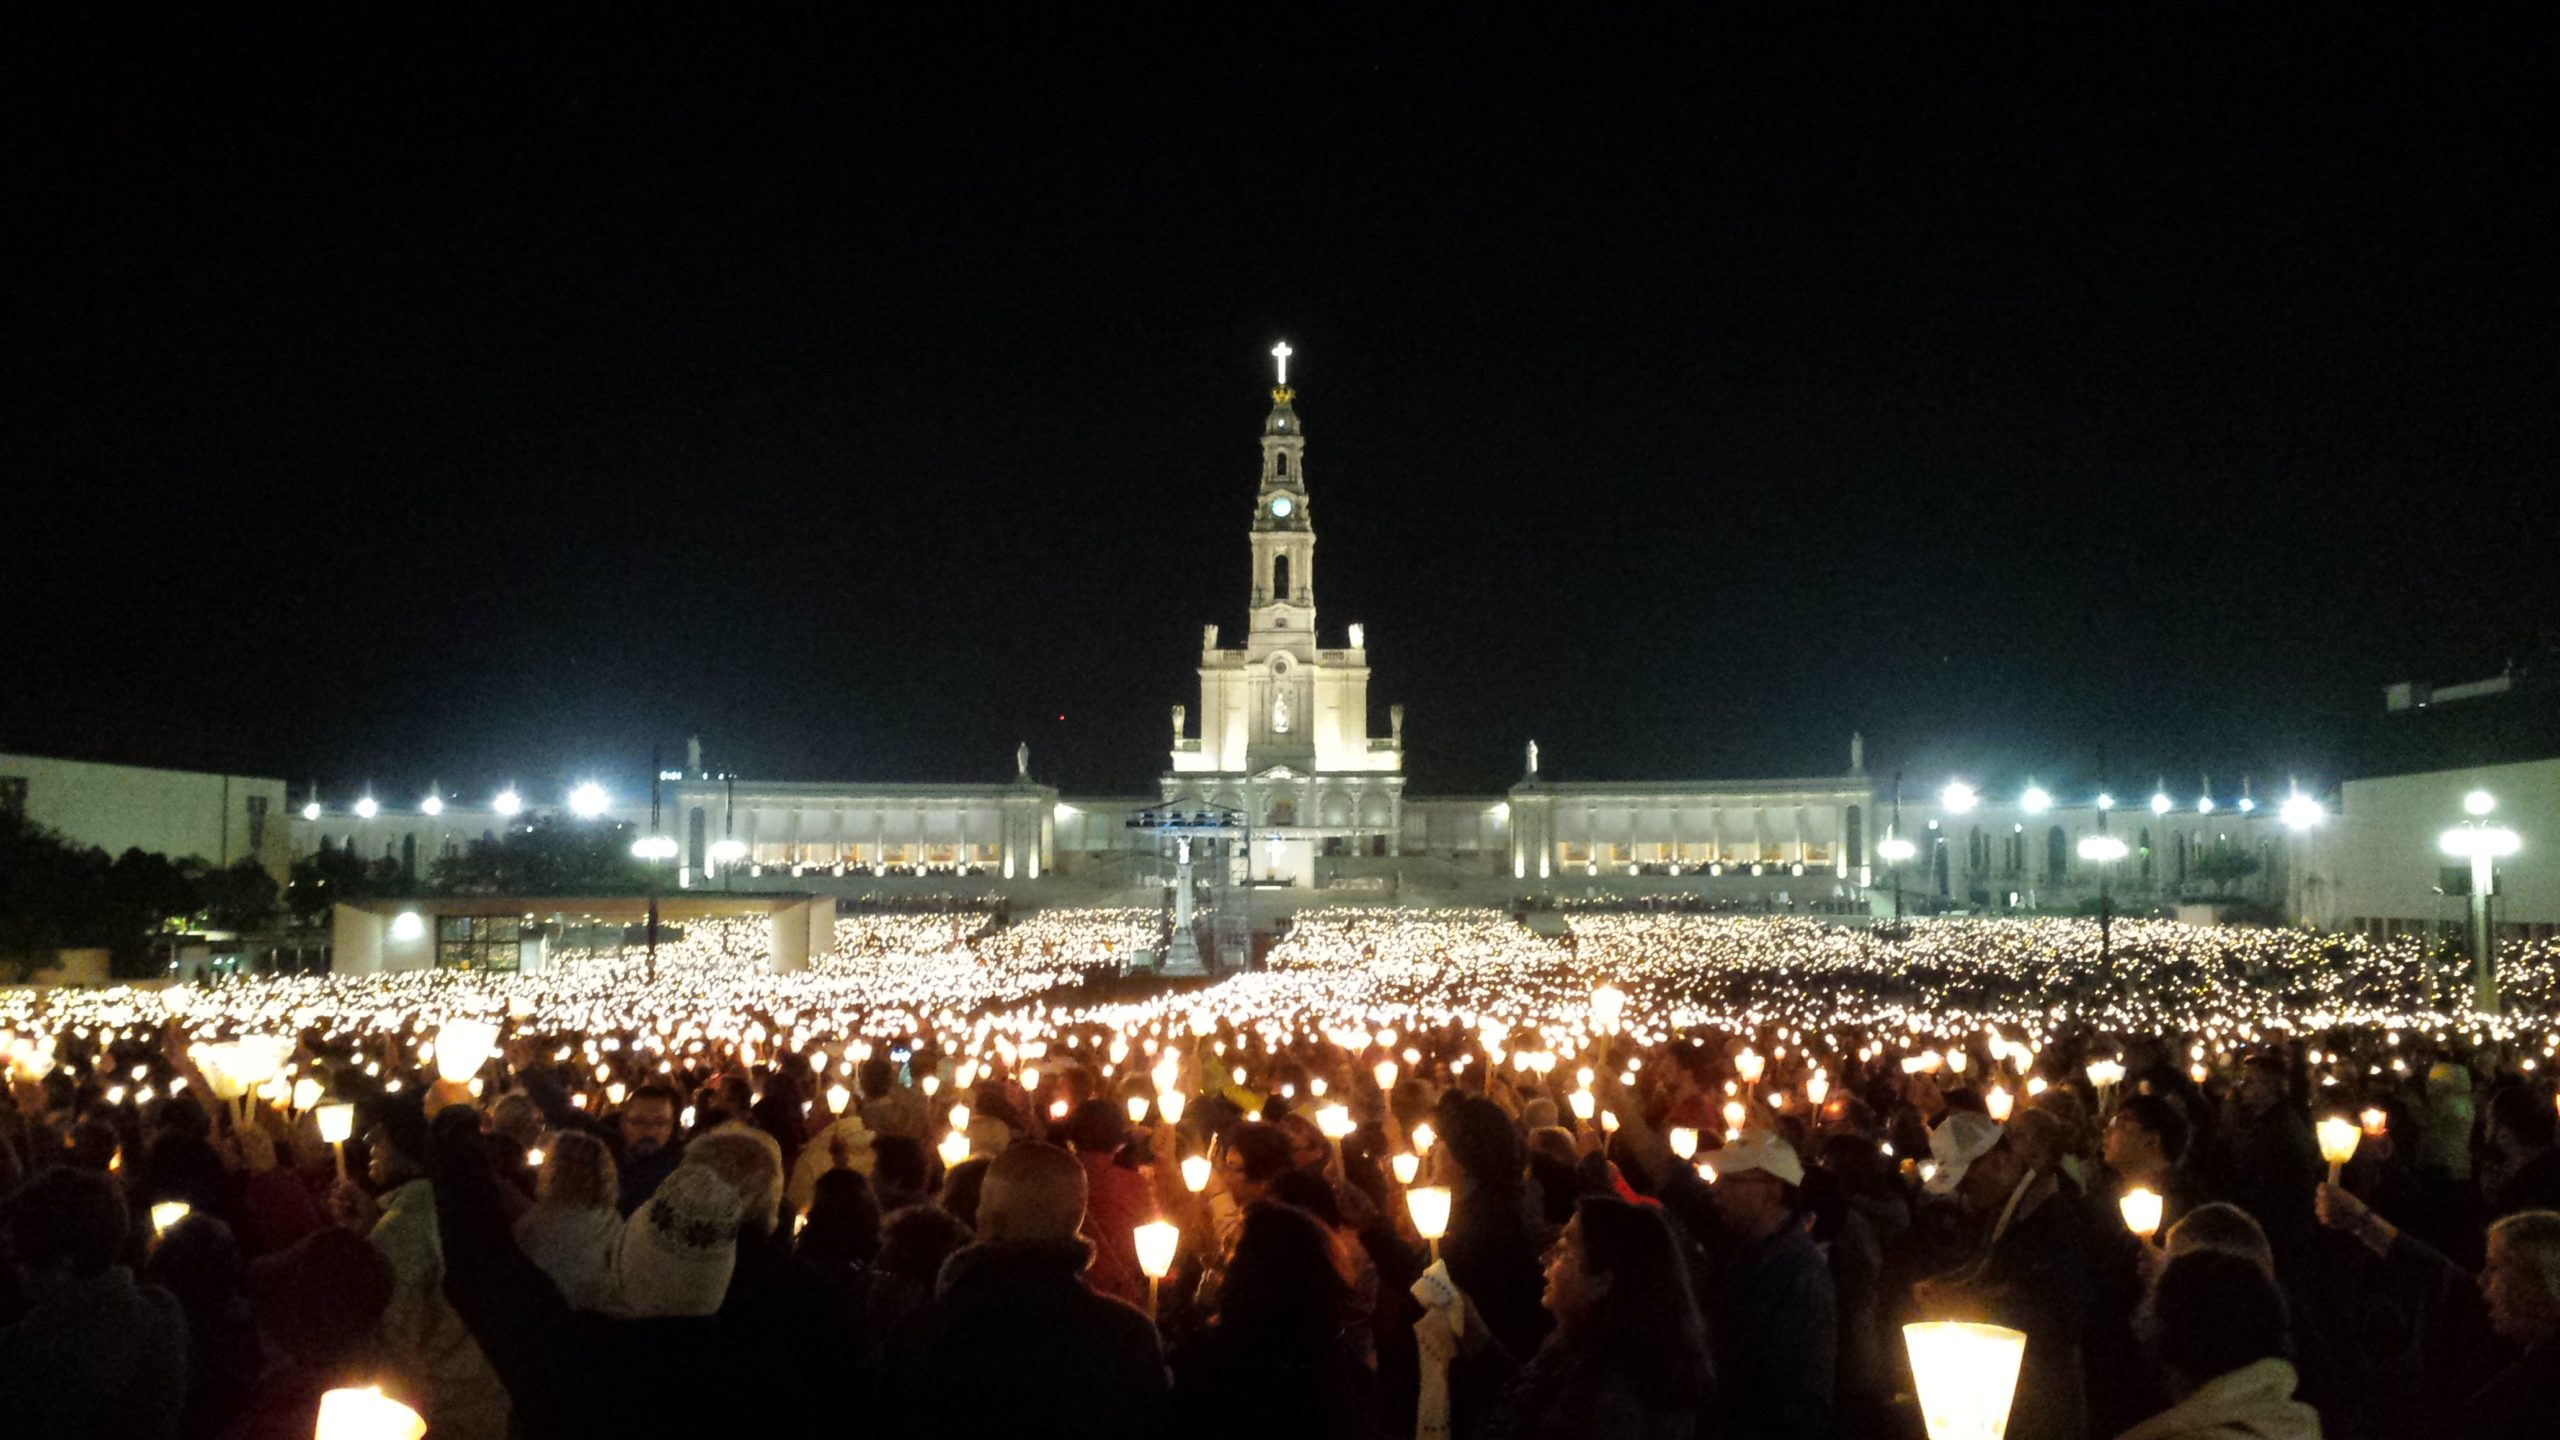 Under the protection of Our Lady of Fatima